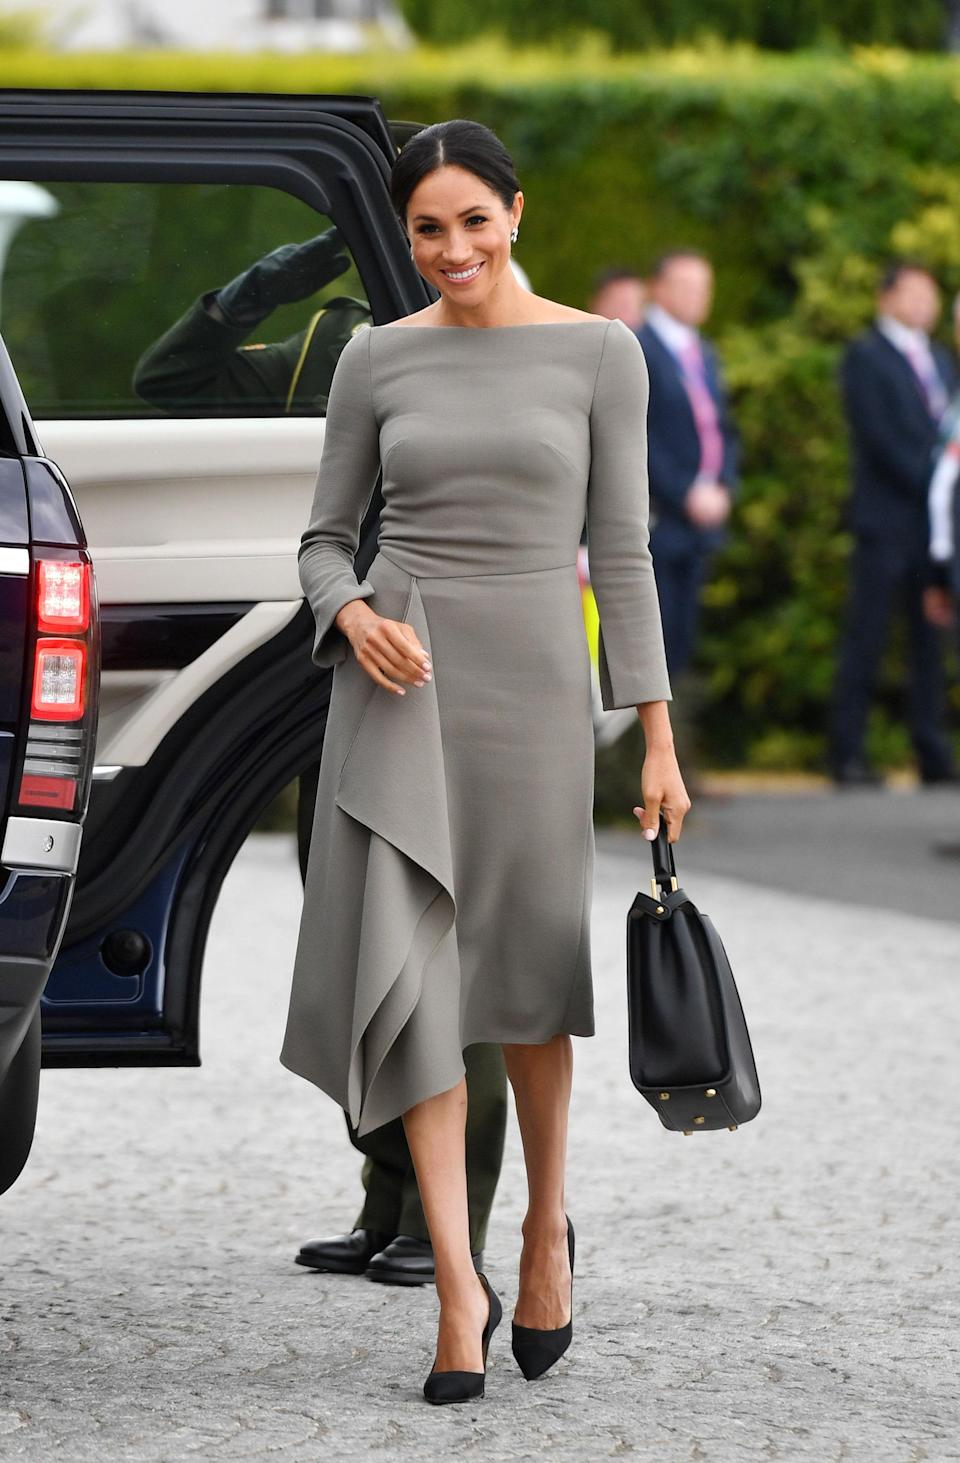 <p>To visit Irish President Michael Higgins and his wife, Sabina, at their residence, Áras an Uachtaráin, Meghan wore a bespoke earth-toned Roland Mouret dress, not dissimilar to the navy dress Meghan wore by the same designer the night before her wedding. <br><em>[Photo: PA]</em> </p>